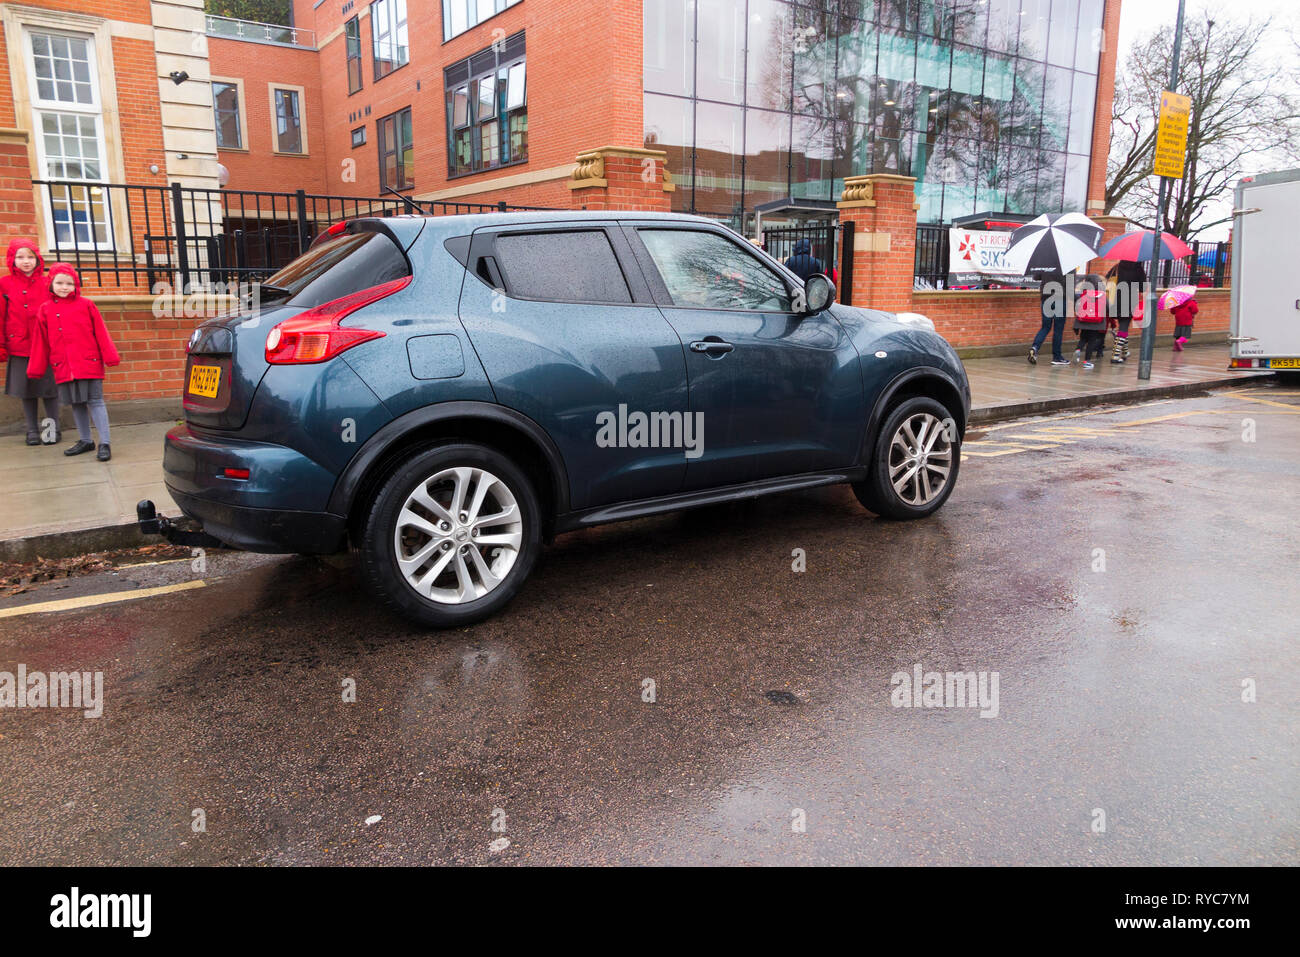 Cars parked on zigzag / zig zag yellow no parking lines; dangerously / badly / illegally during the school run drop off / collection. UK. (107) - Stock Image